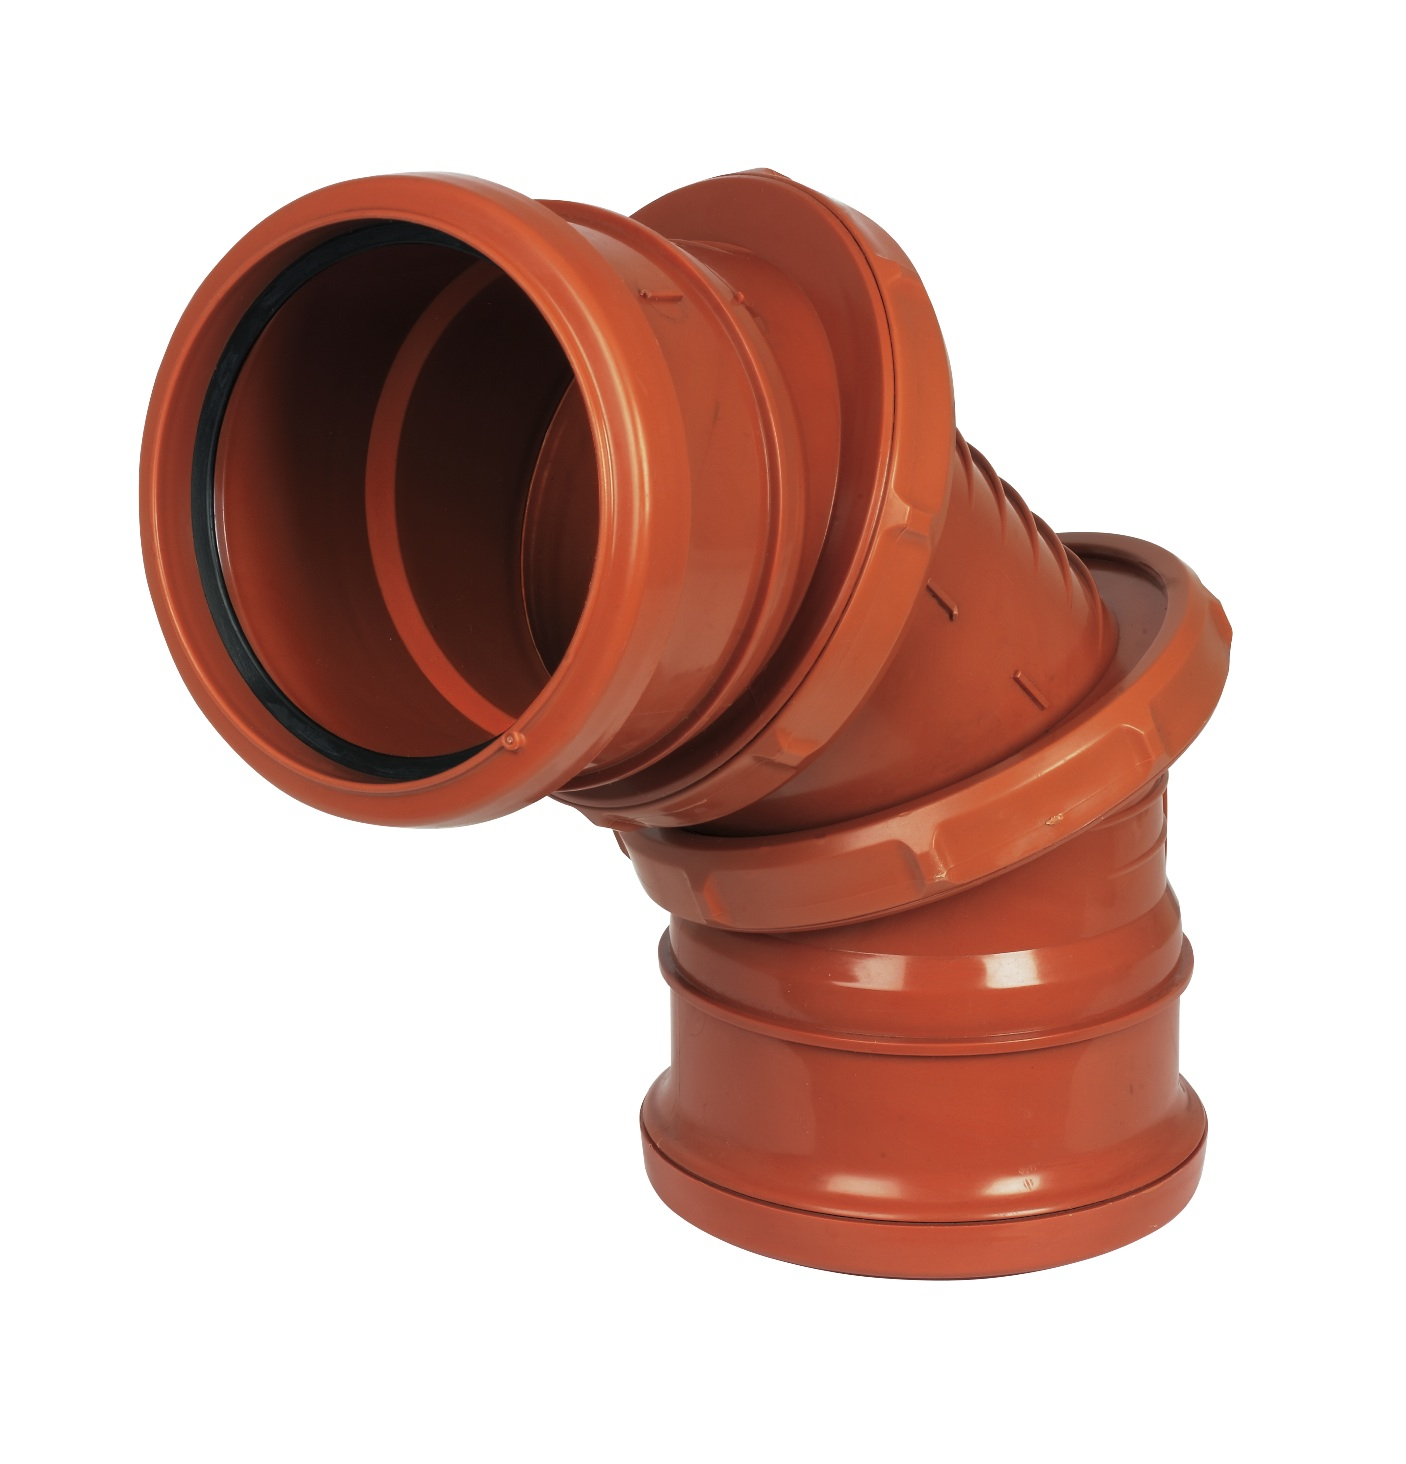 Floplast D560 0-90* Adjustable Bend 110mm Underground Drainage